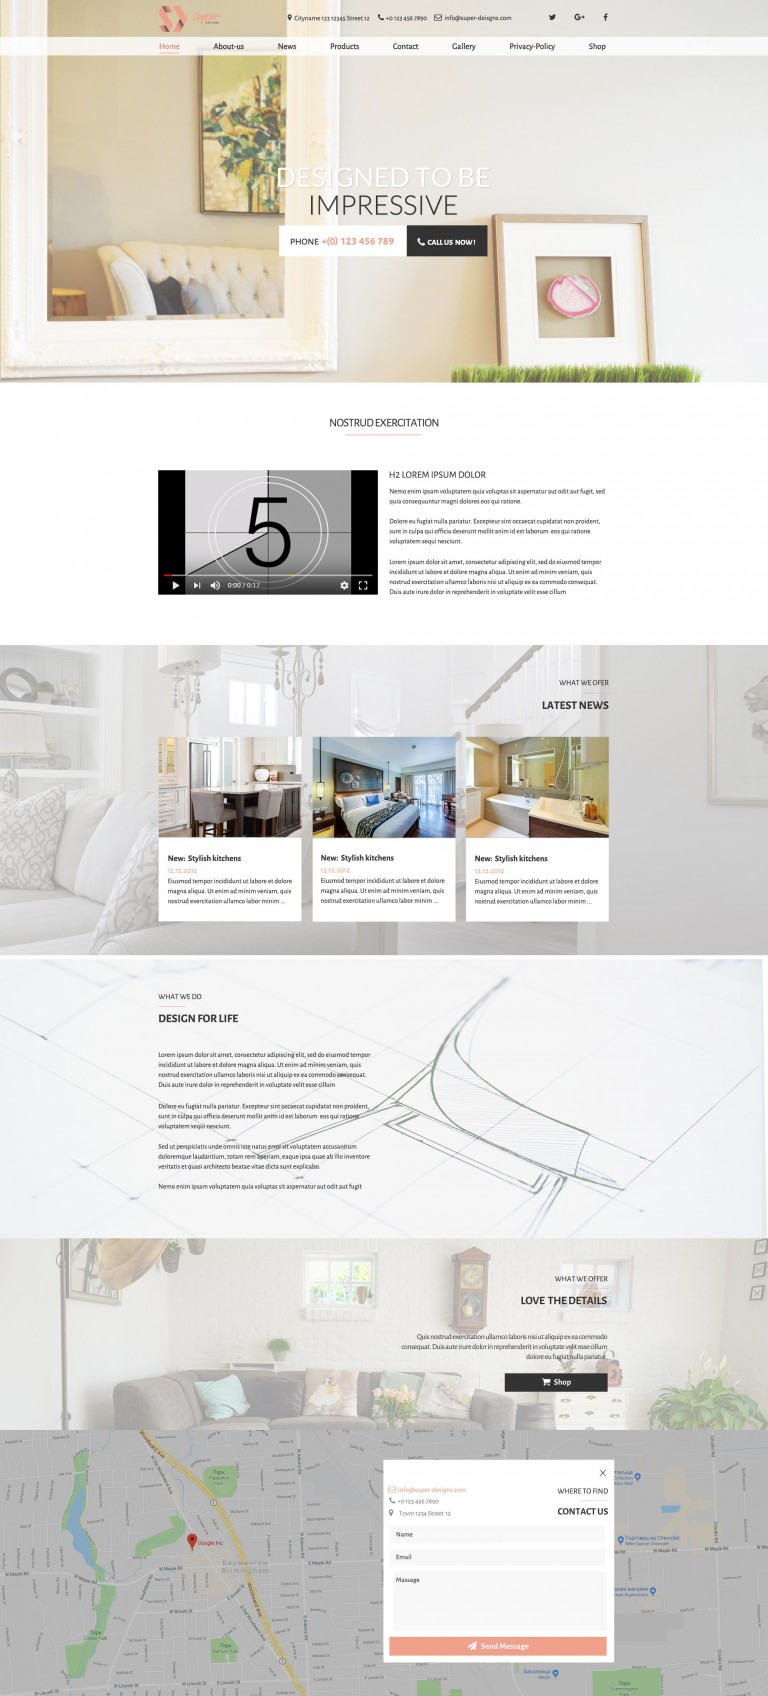 Impressive design FURNITURE HTML template